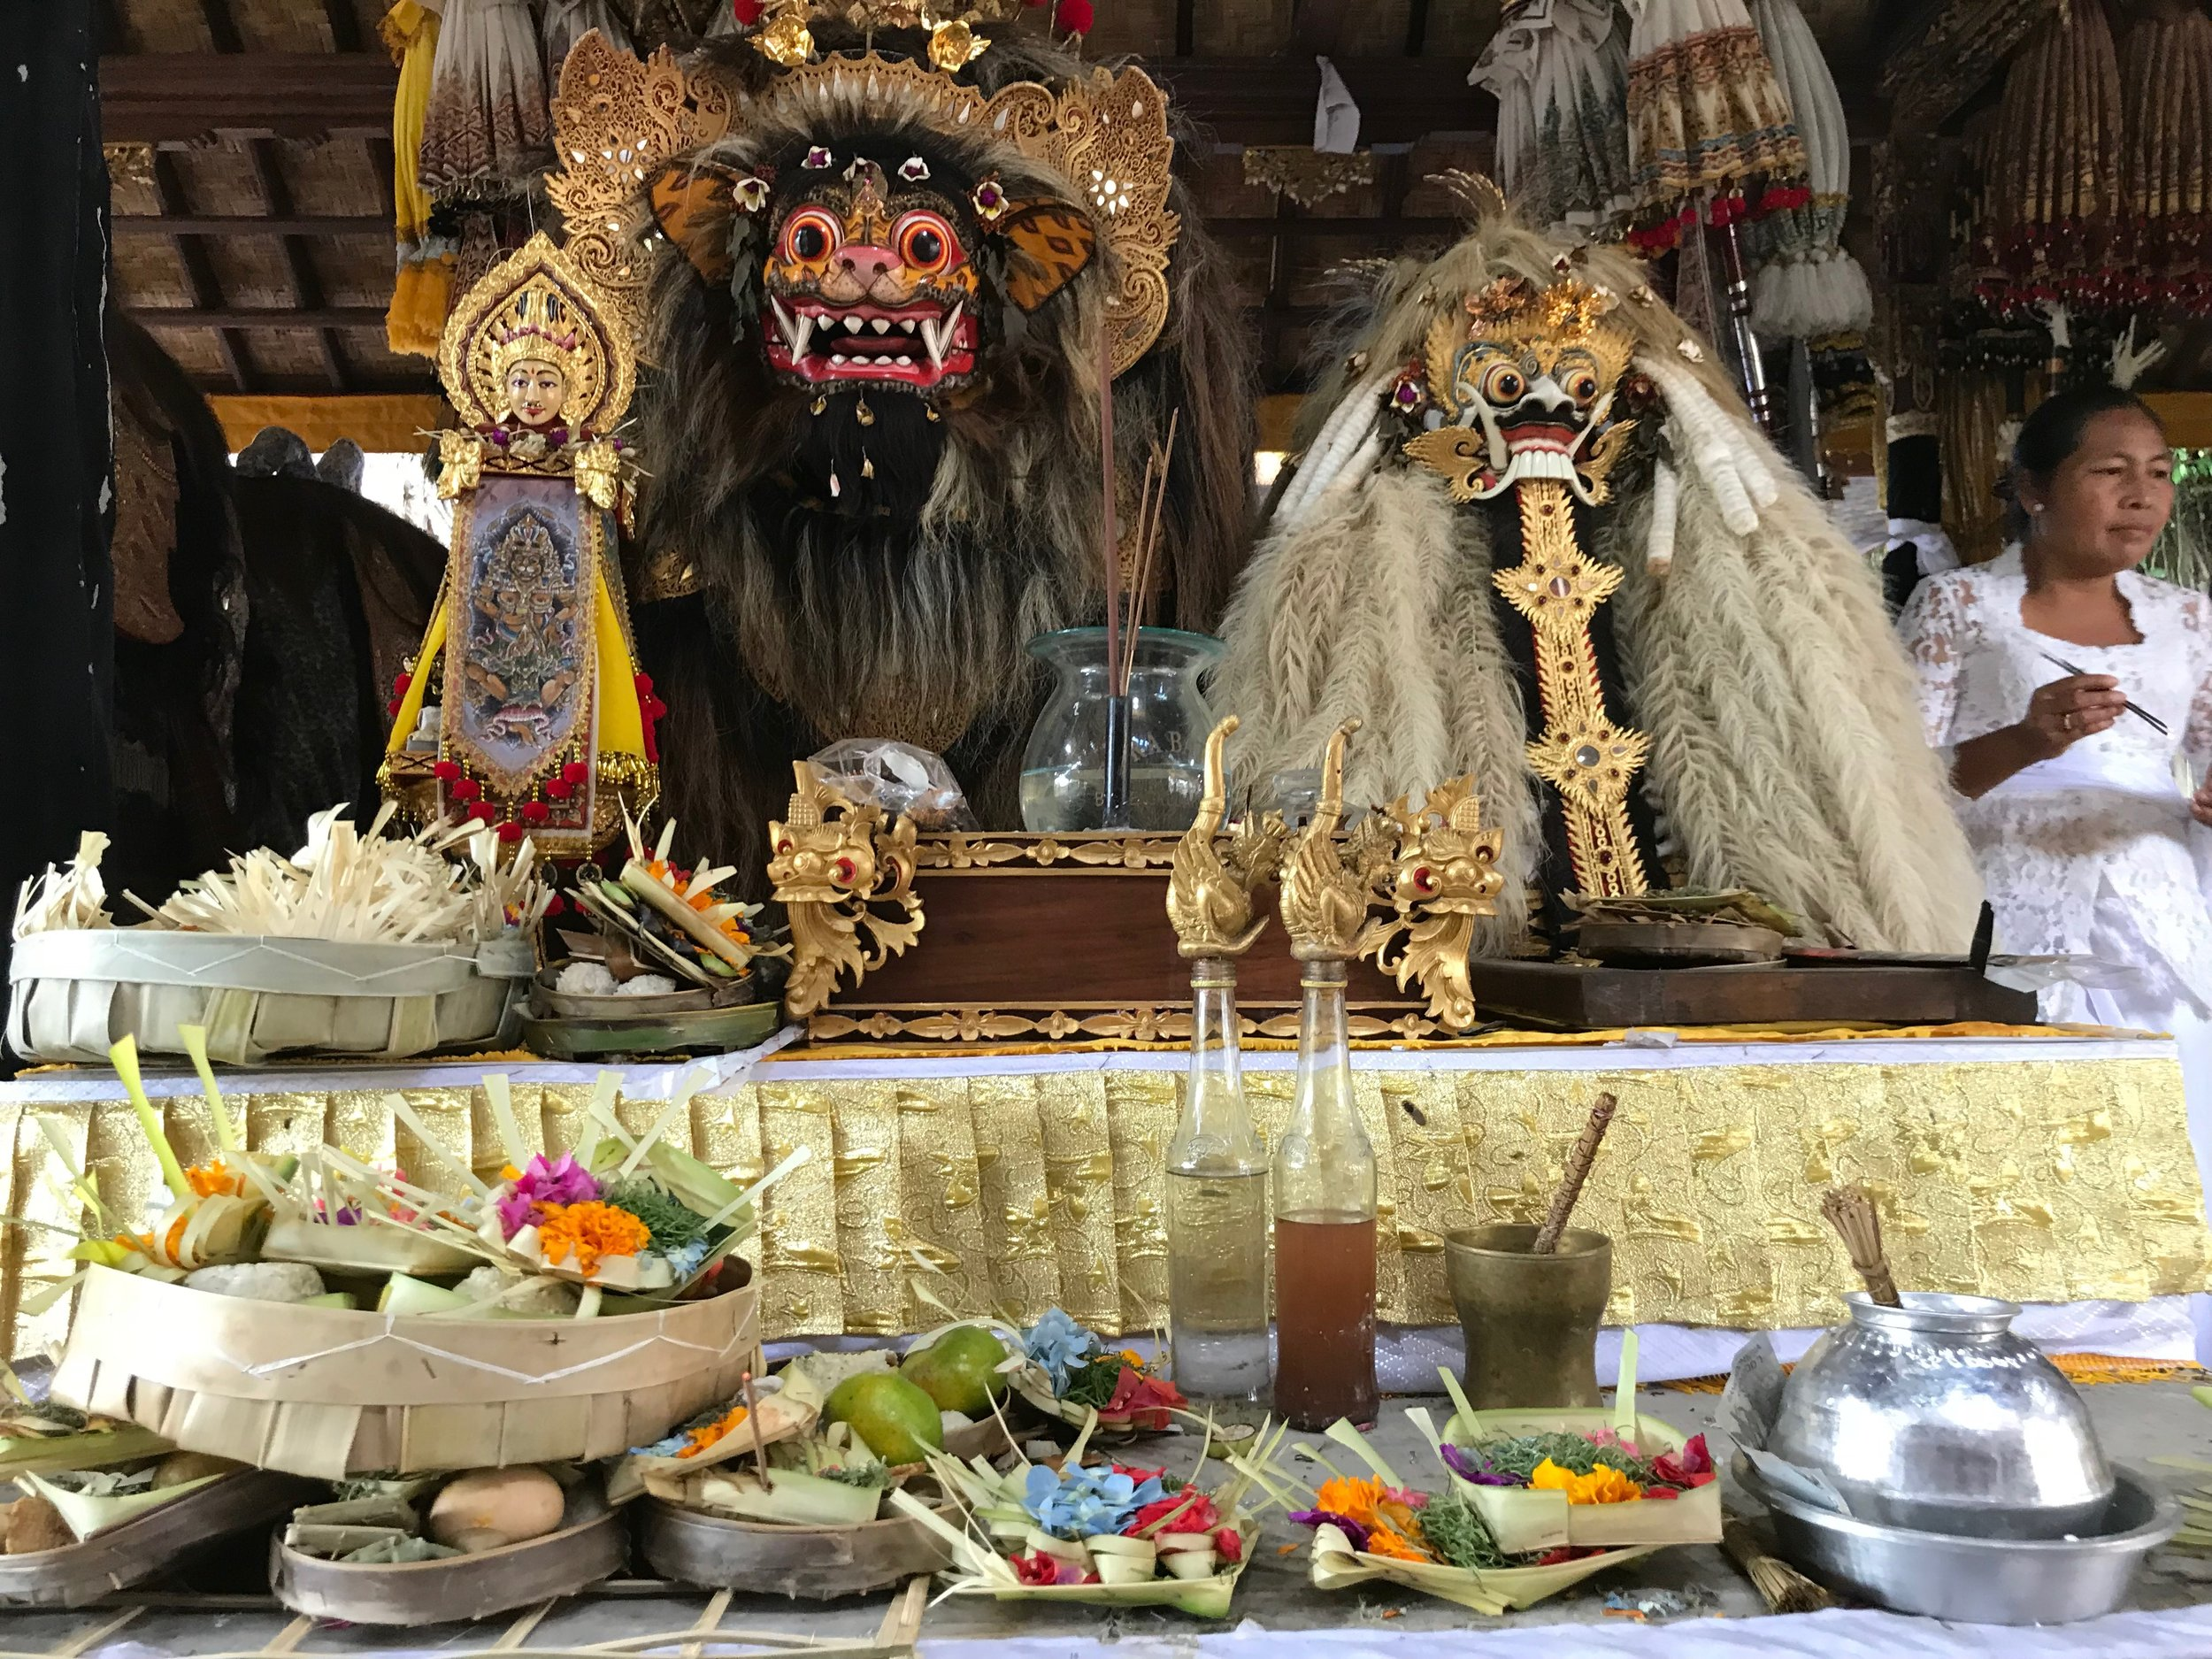 Barong masks receive offerings